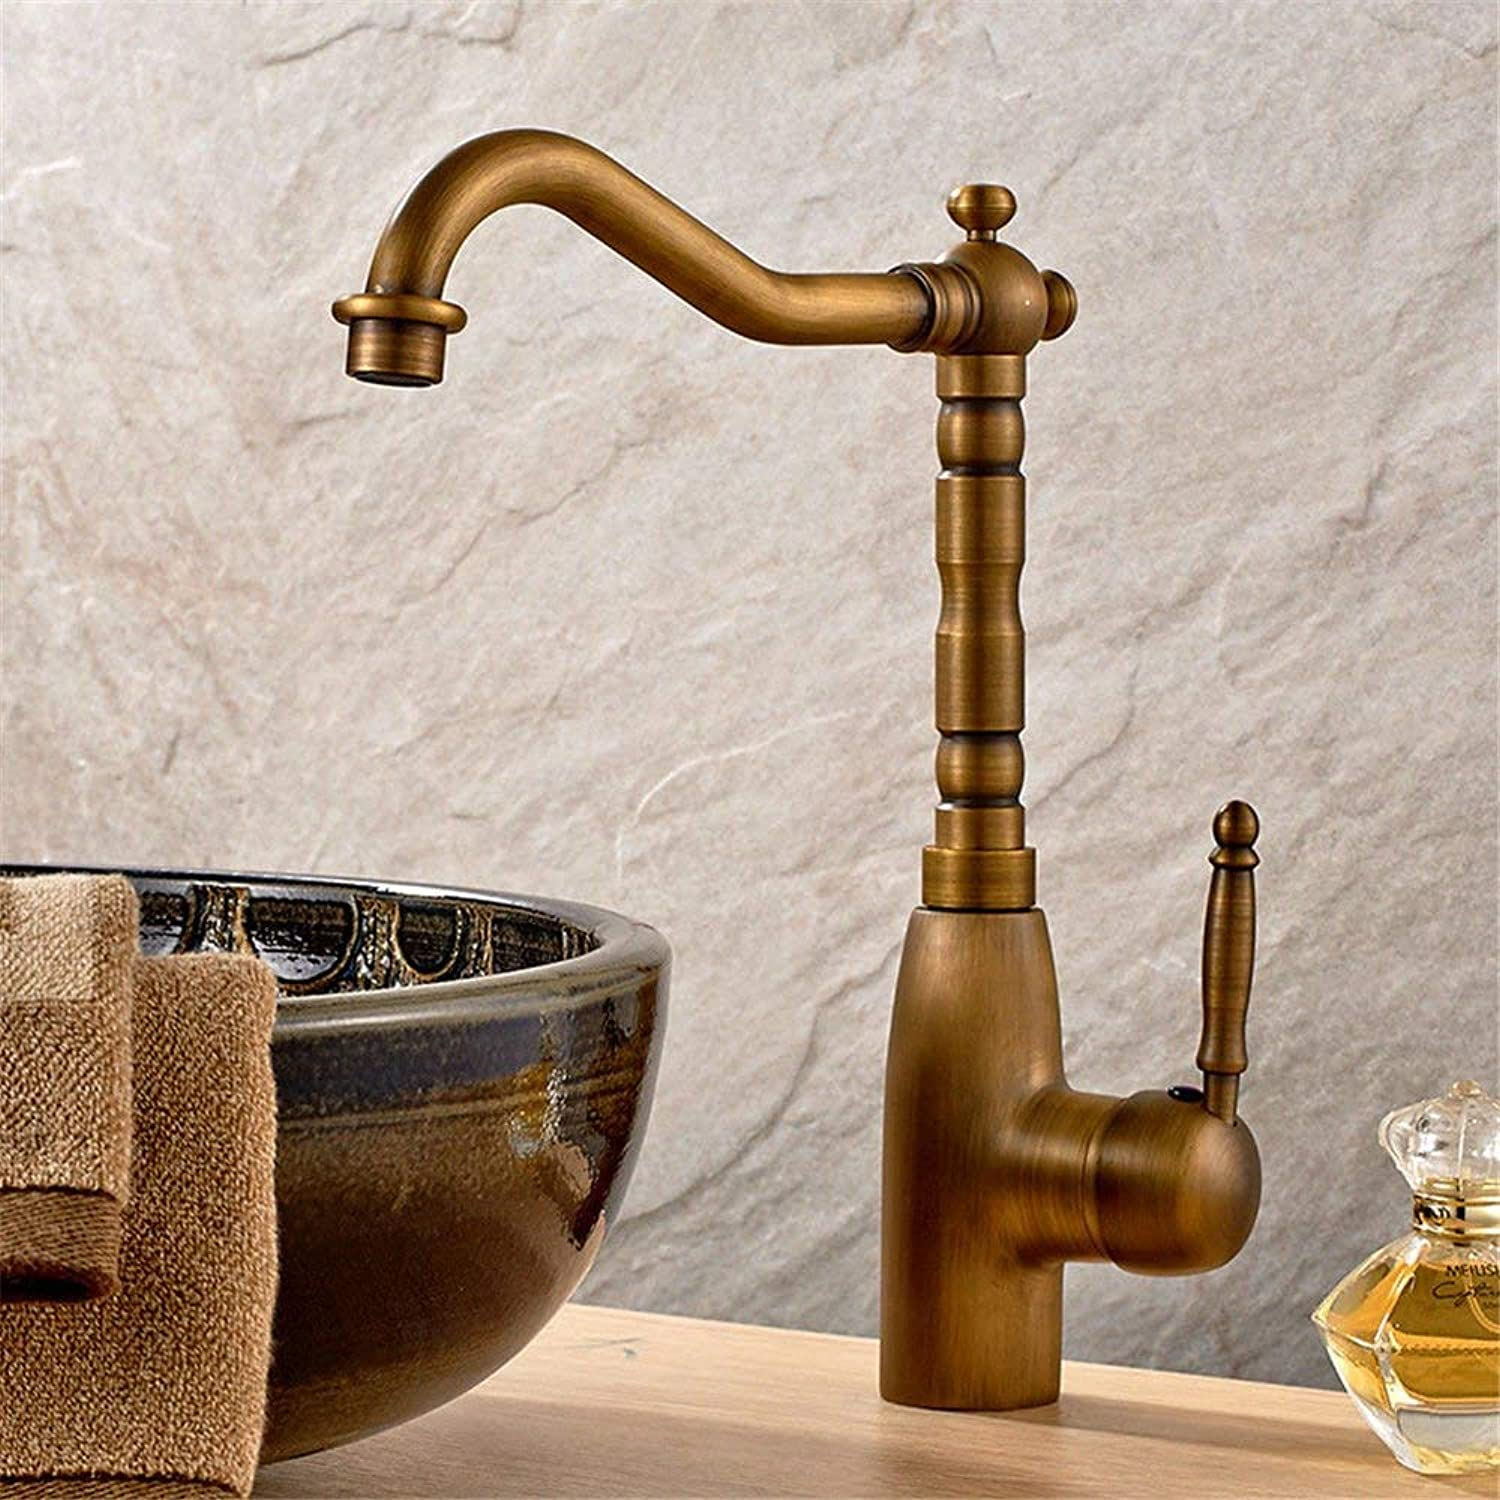 FERZA home Sink Mixer Tap Bathroom Kitchen Basin Water Tap Leakproof Save Water Kitchen Antique Copper-Wide Single-Mix Tap Cold Water Kitchen A